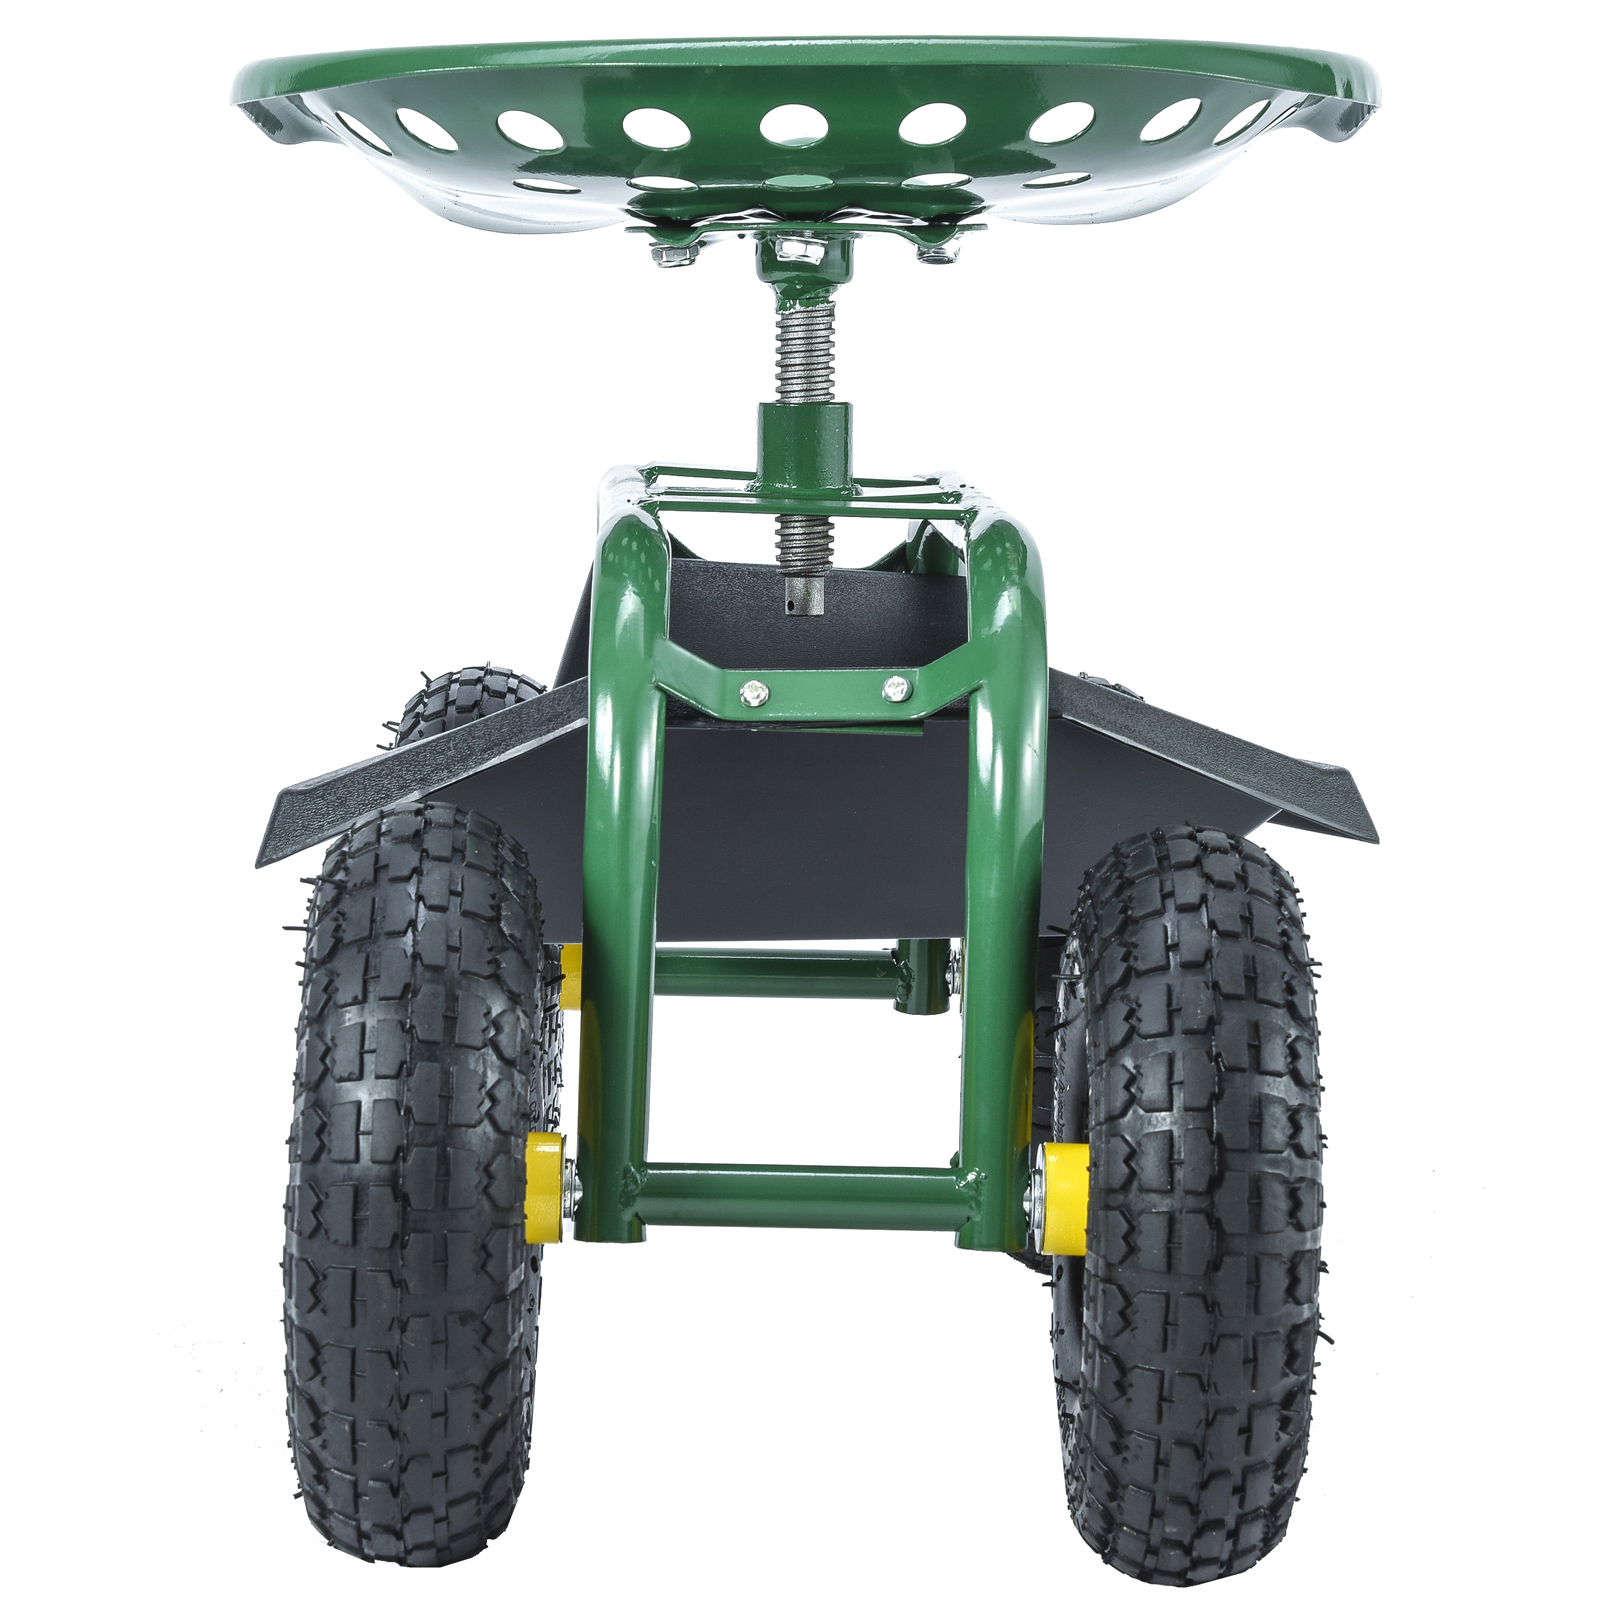 Delicieux Green Rolling Garden Cart Work Seat W/Heavy Duty Tool Tray Planting  Gardening